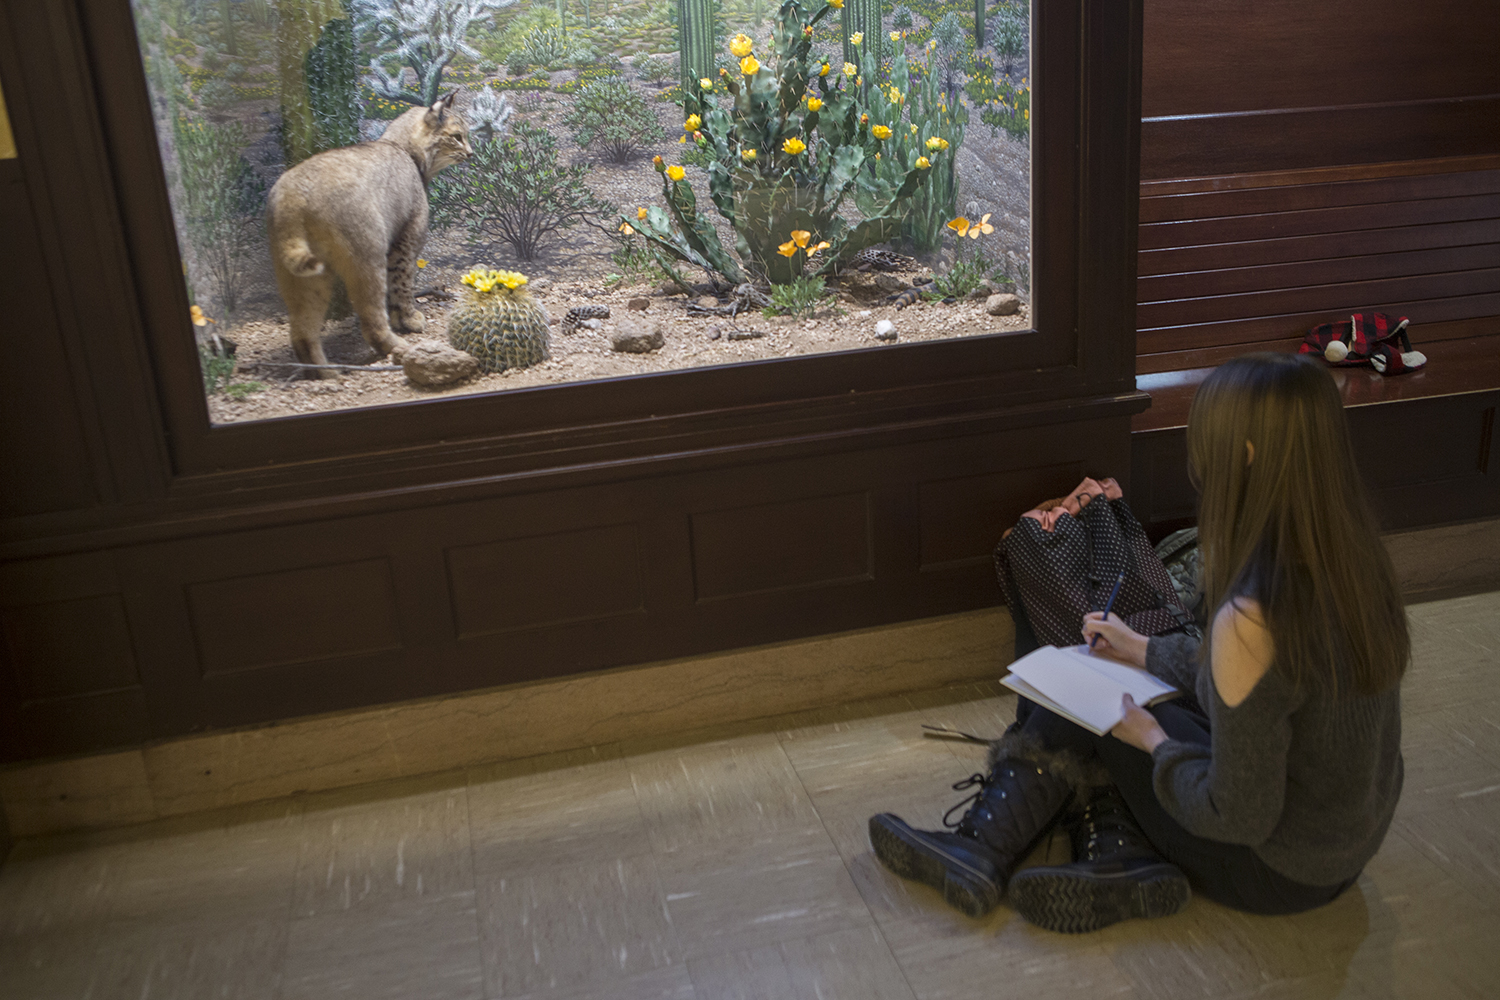 An artist sketches in the Museum of Natural History in MacBride Hall for Art Nite on Thursday, Feb. 7, 2019.